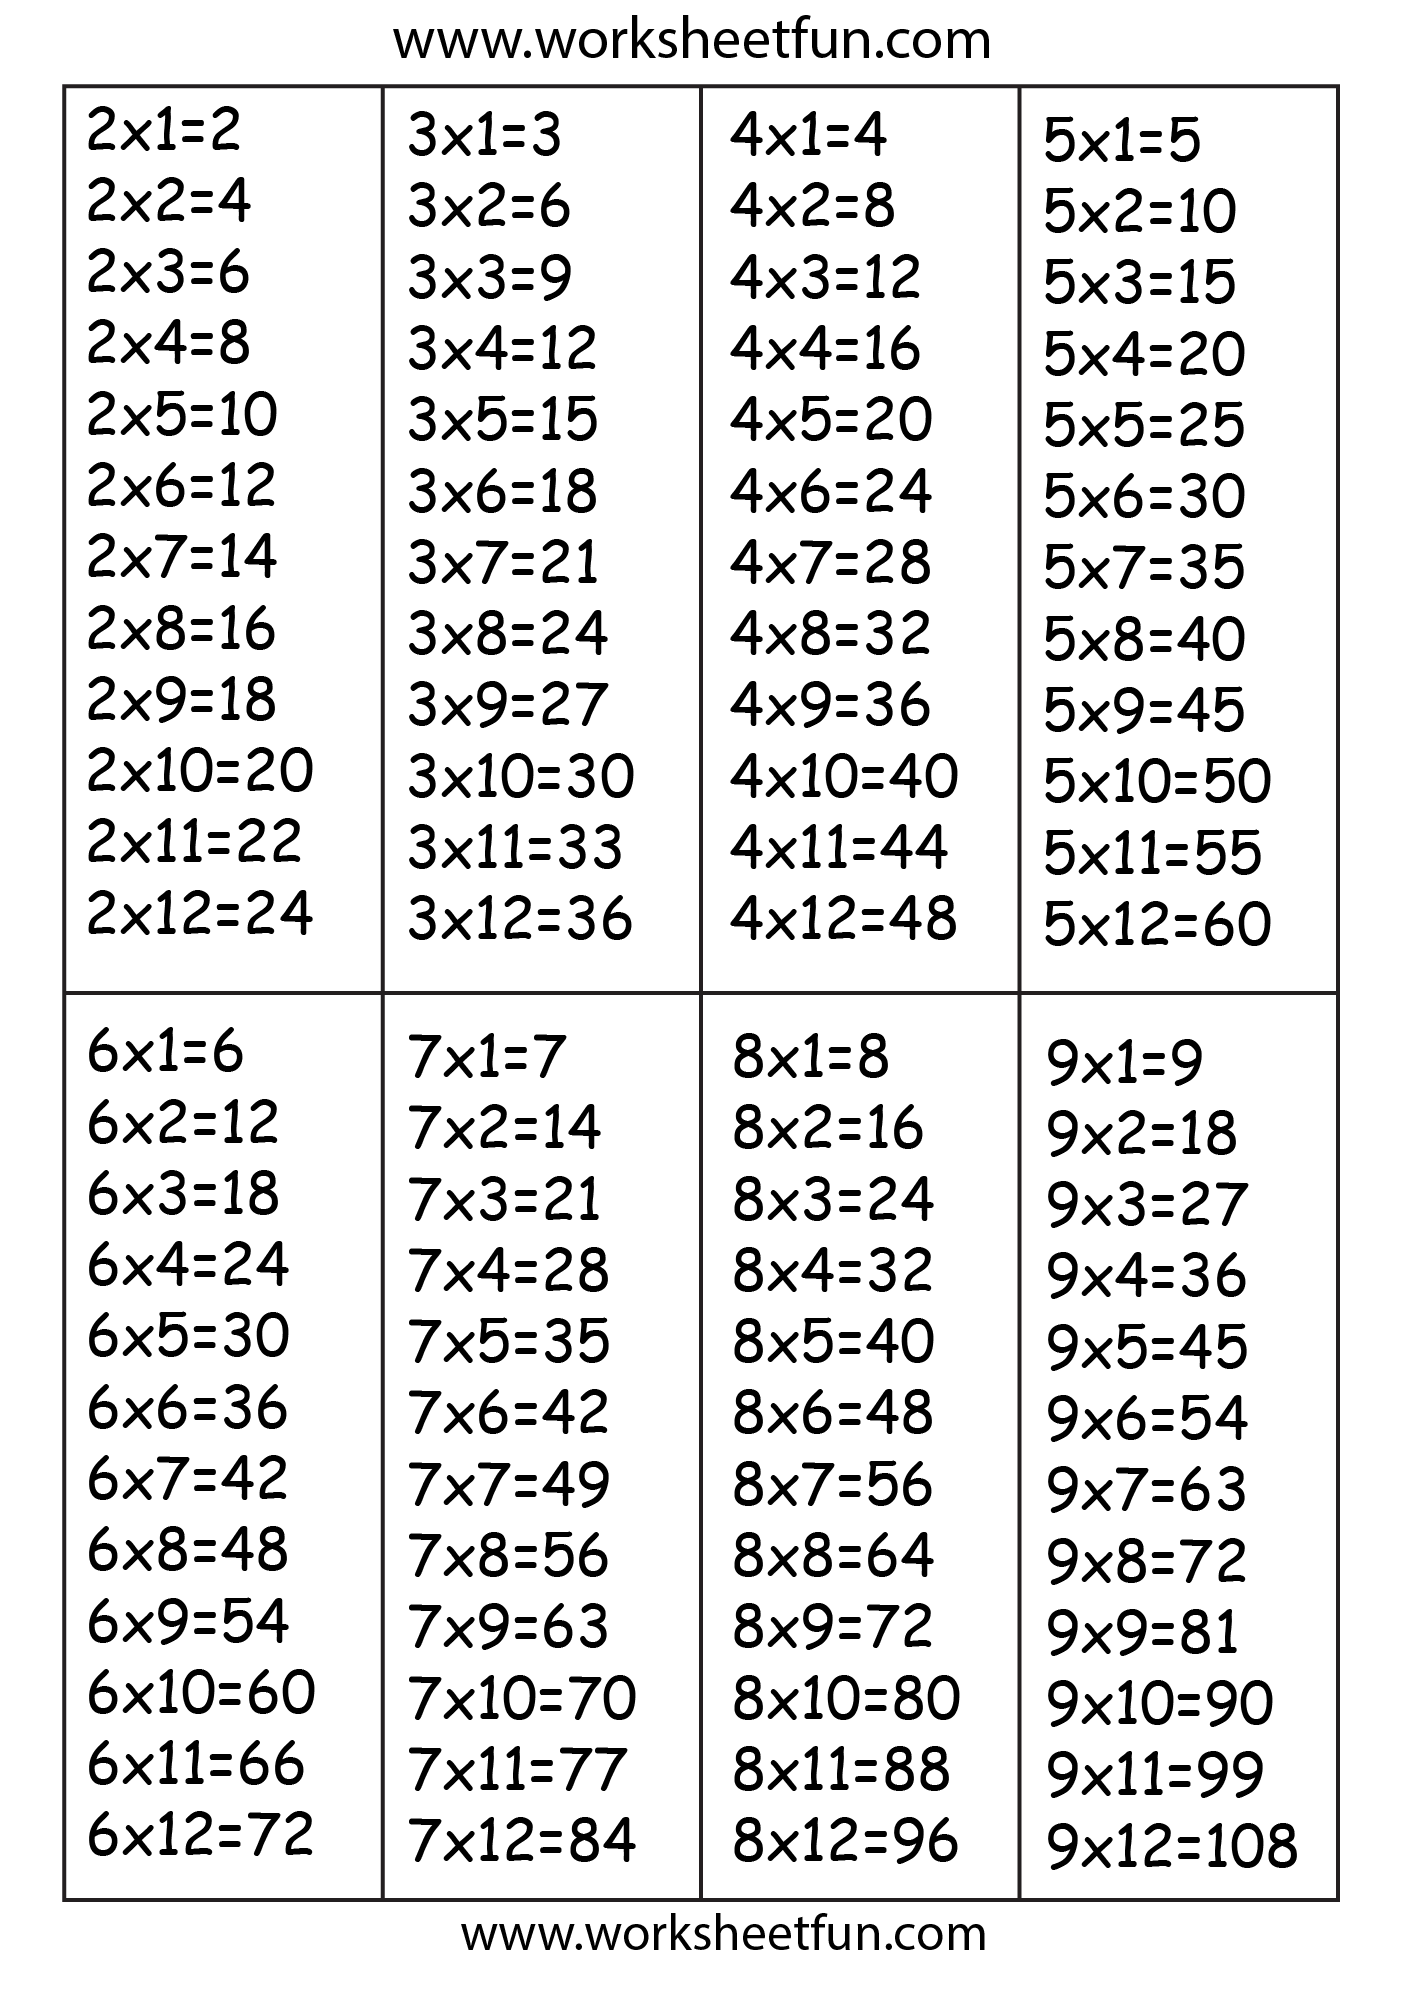 Times tables free printable worksheets worksheetfun times table chart 2 3 4 5 6 7 nvjuhfo Choice Image